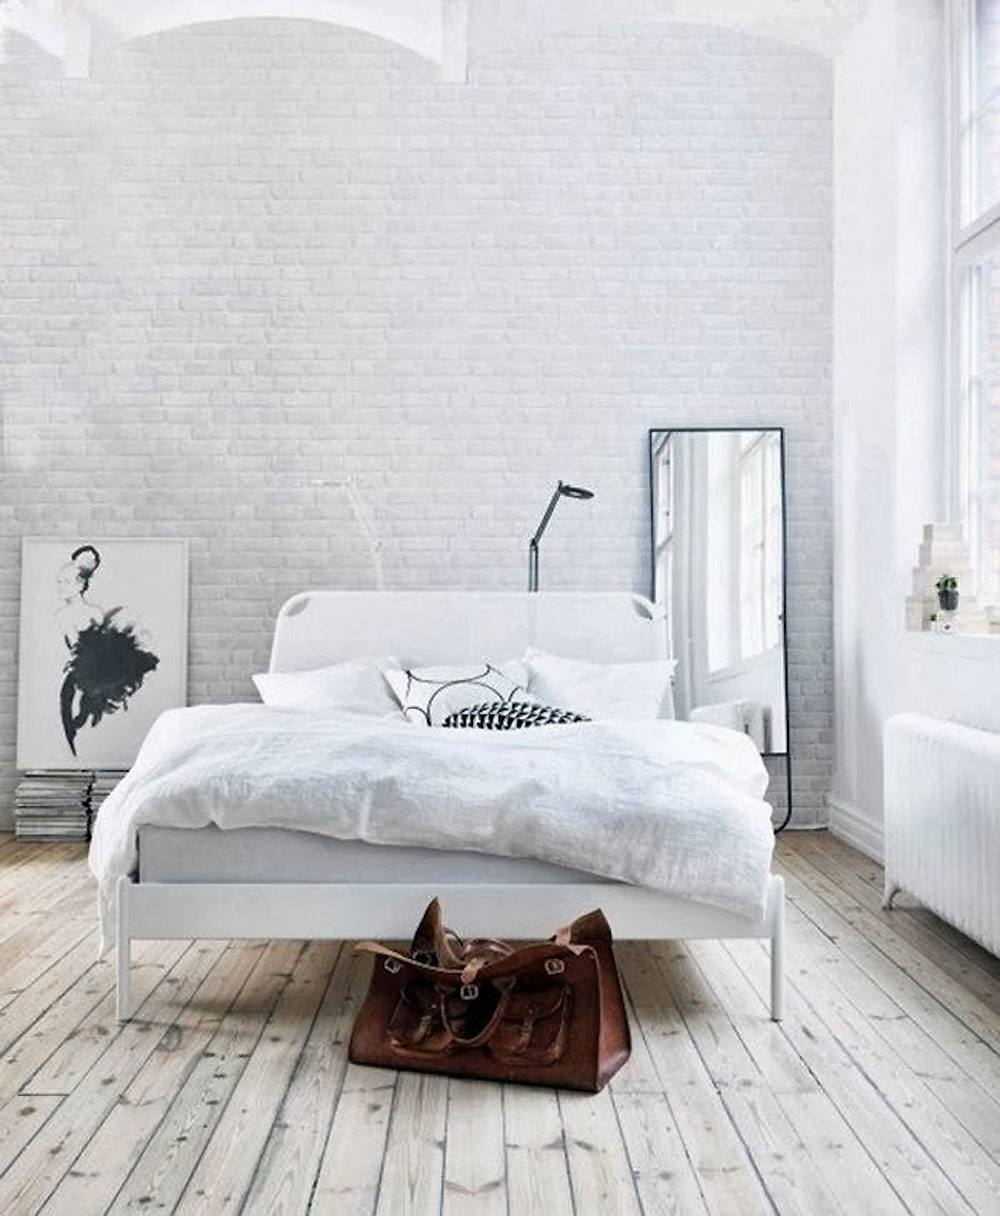 Minimalist Bedroom Decor Ideas: 40 Minimalist Bedroom Ideas